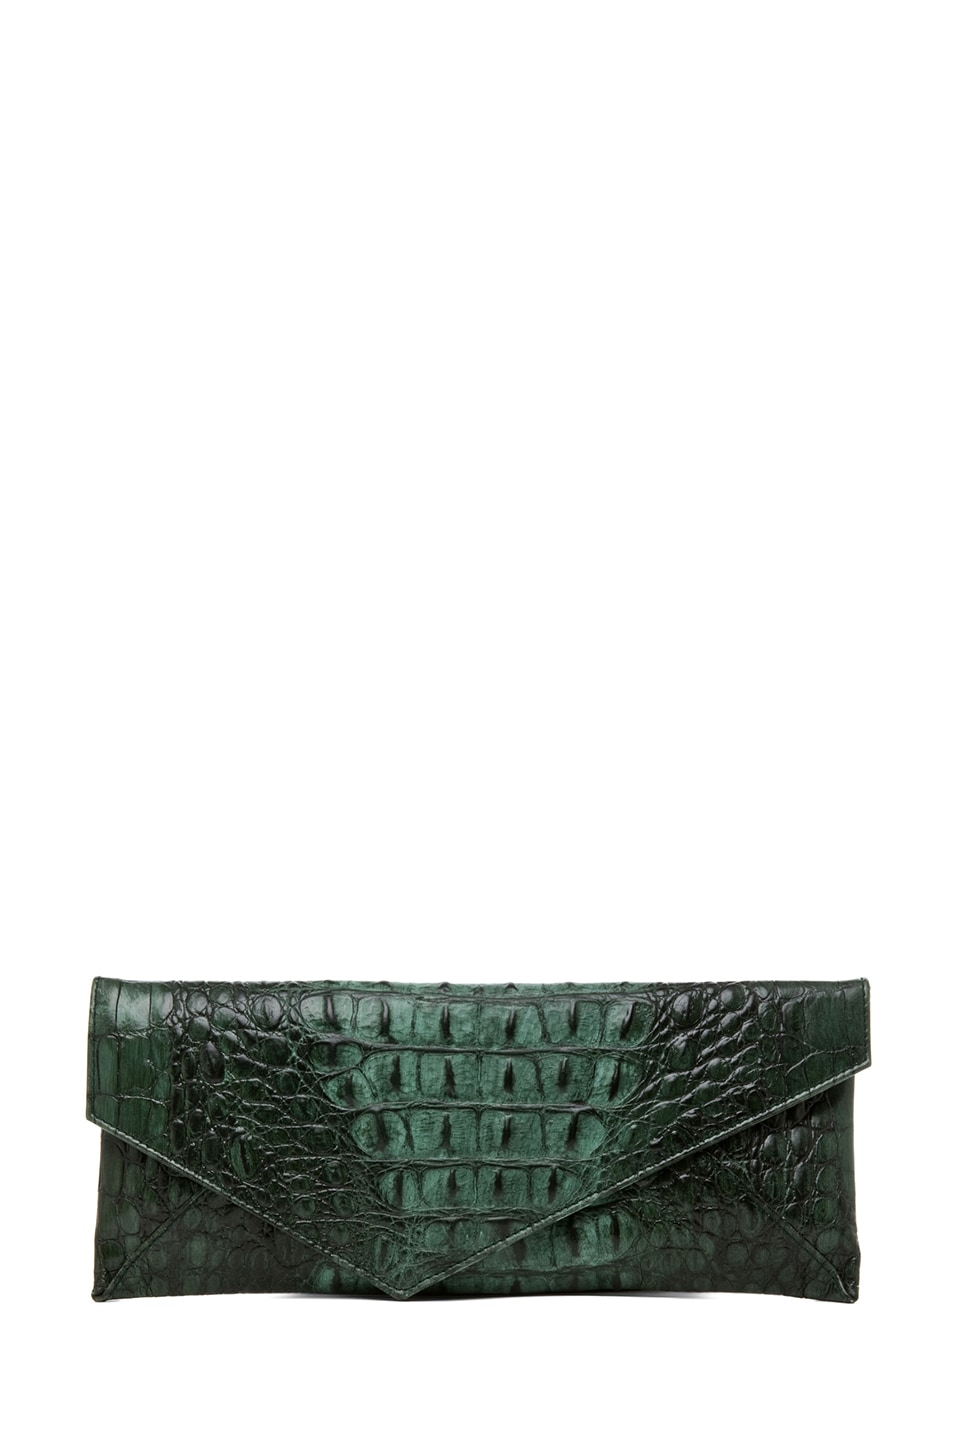 Image 1 of Stark Knotted Croc Clutch in Green